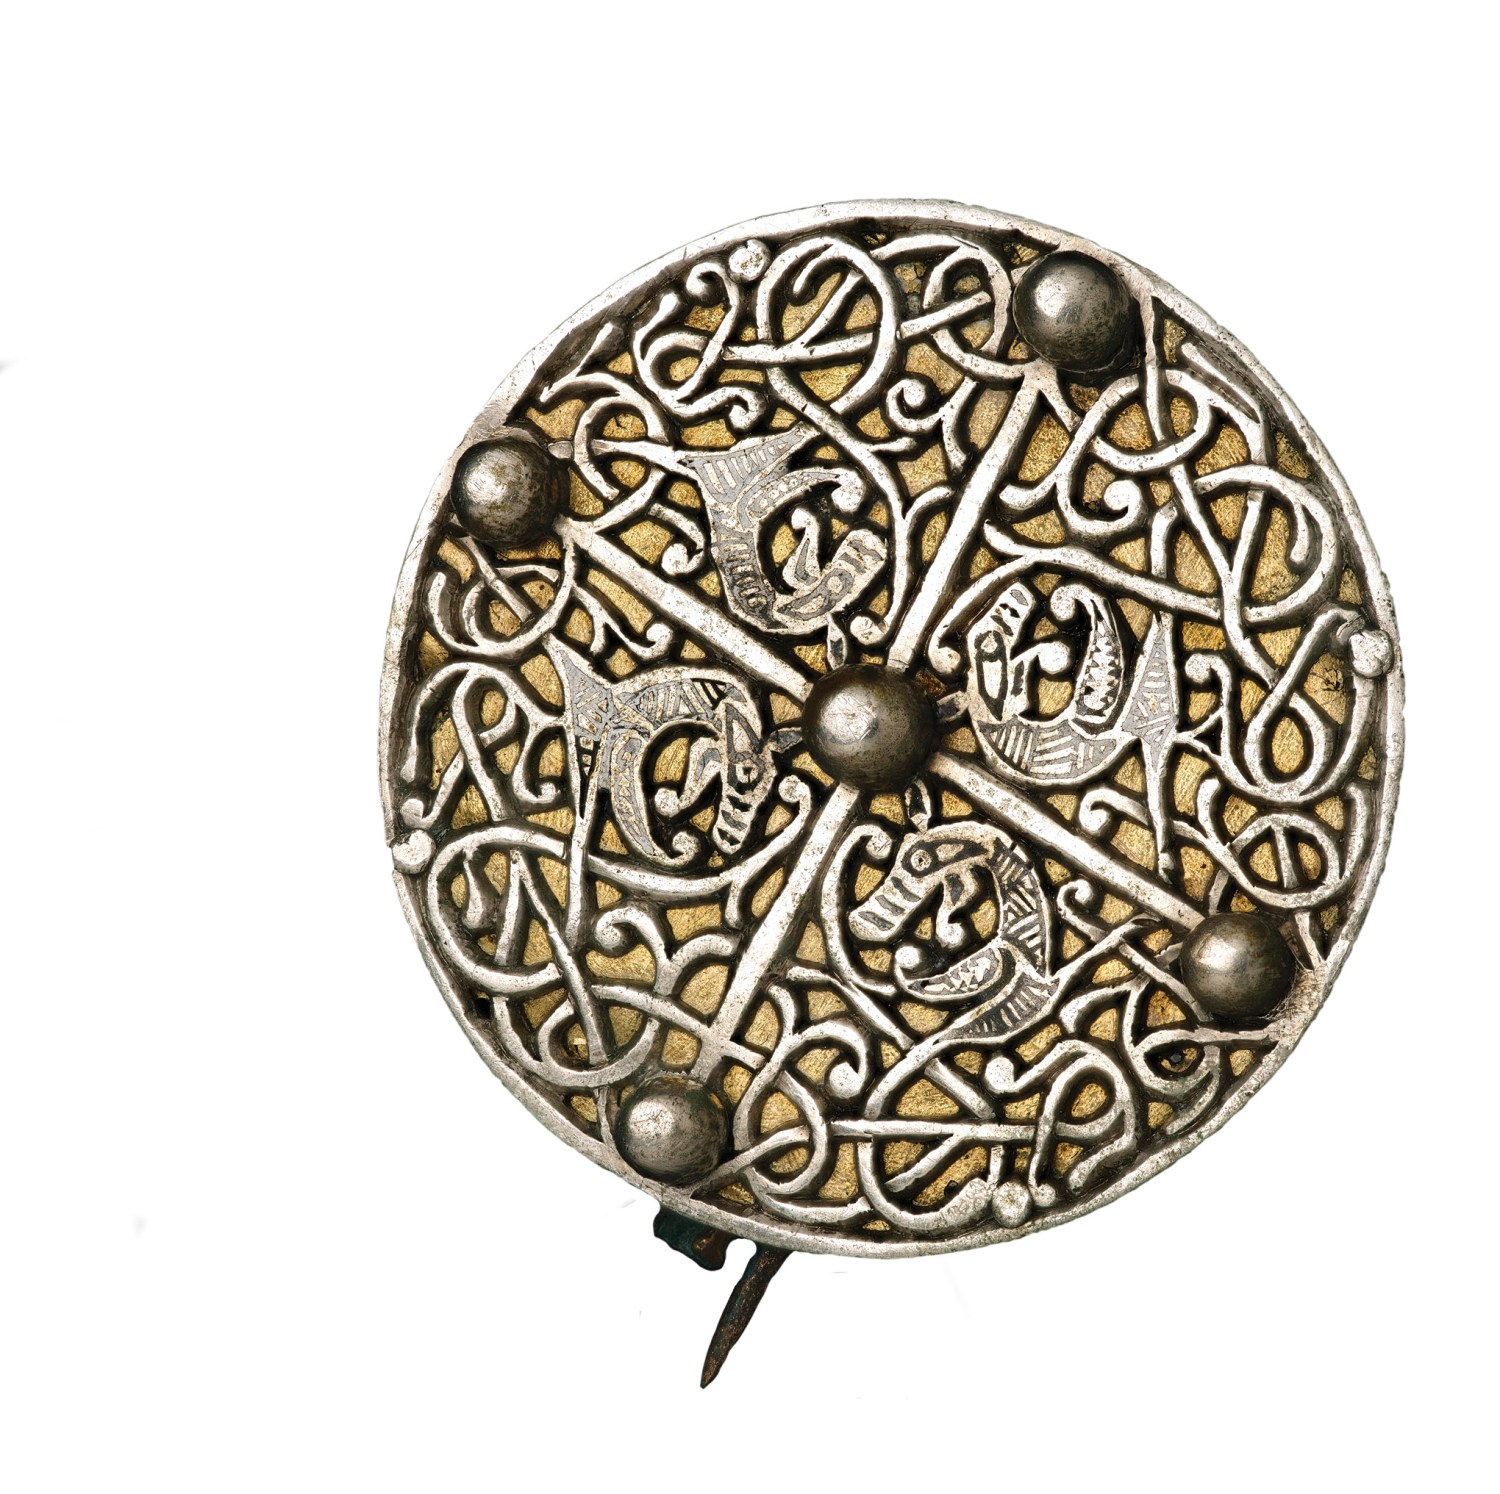 above A Late Anglo-Saxon silver disc-brooch from the lidded vessel in the Galloway Hoard.